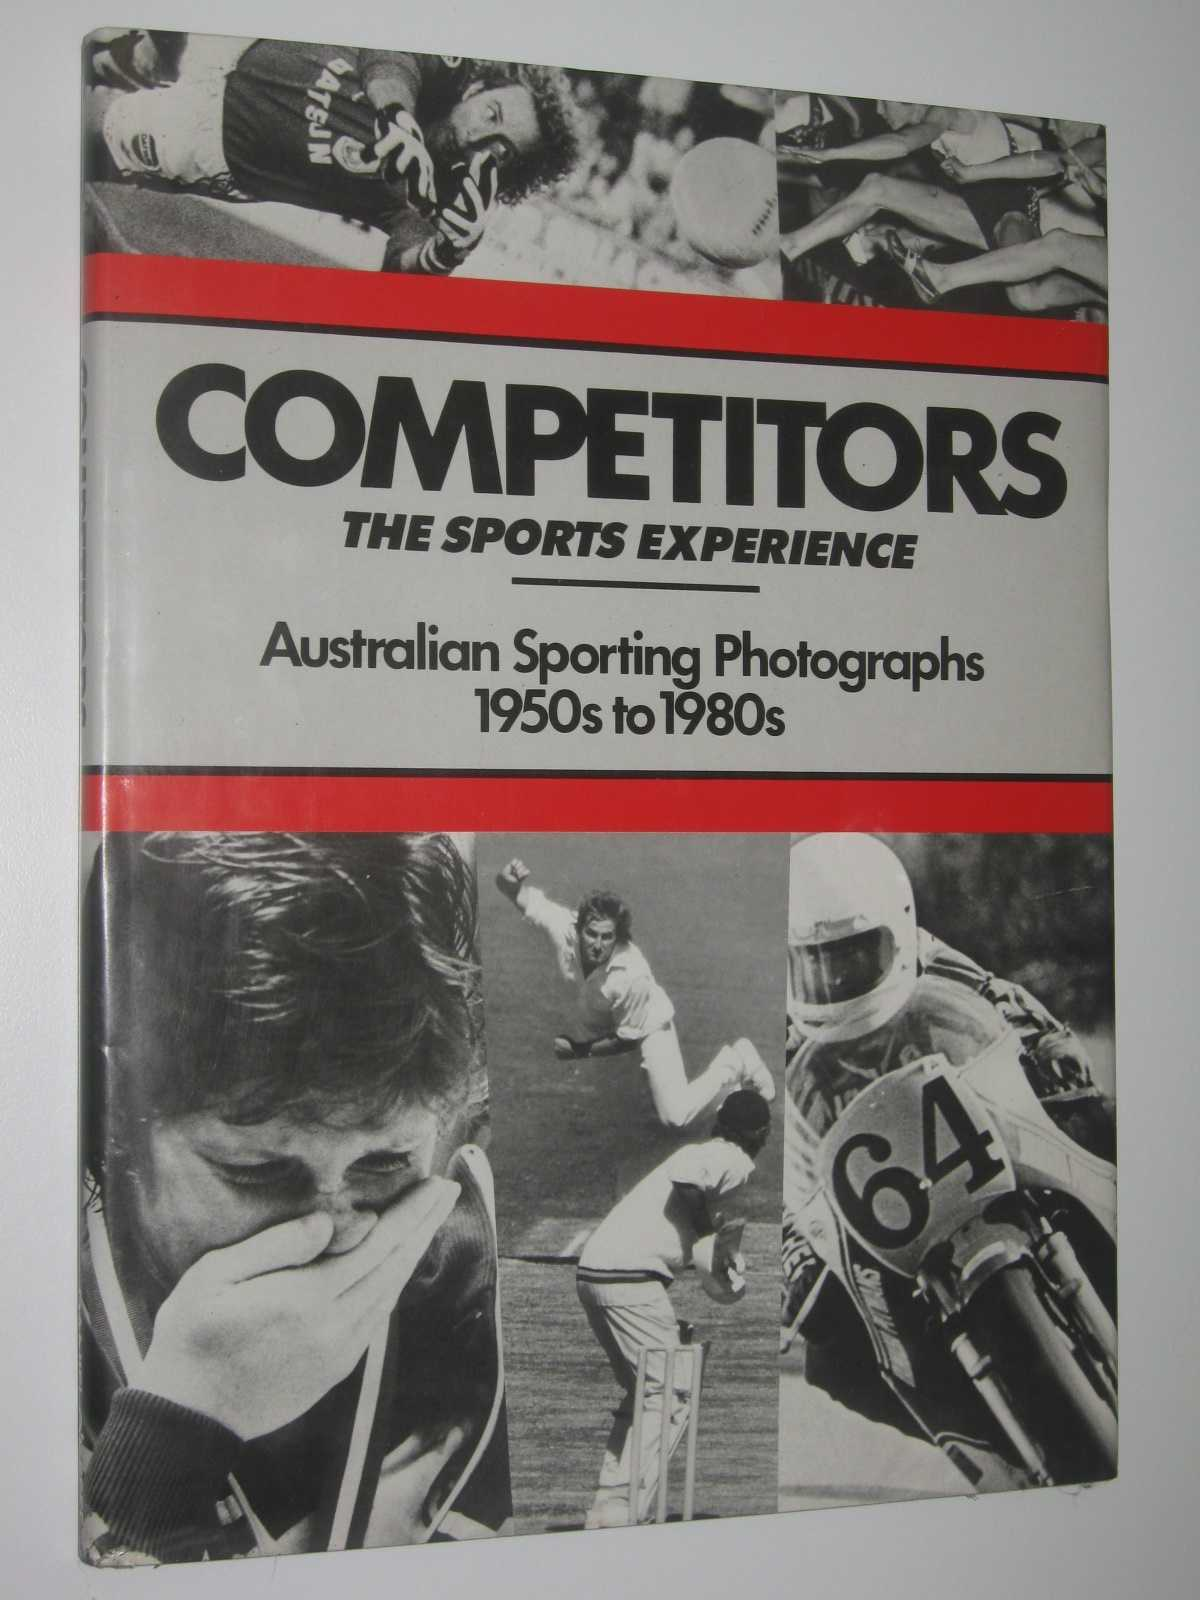 Competitors: The Sports Experience : Australian Sporting Photographs 1950s to 1980s, O'Keefe, Daniel & Atkinson, Ann